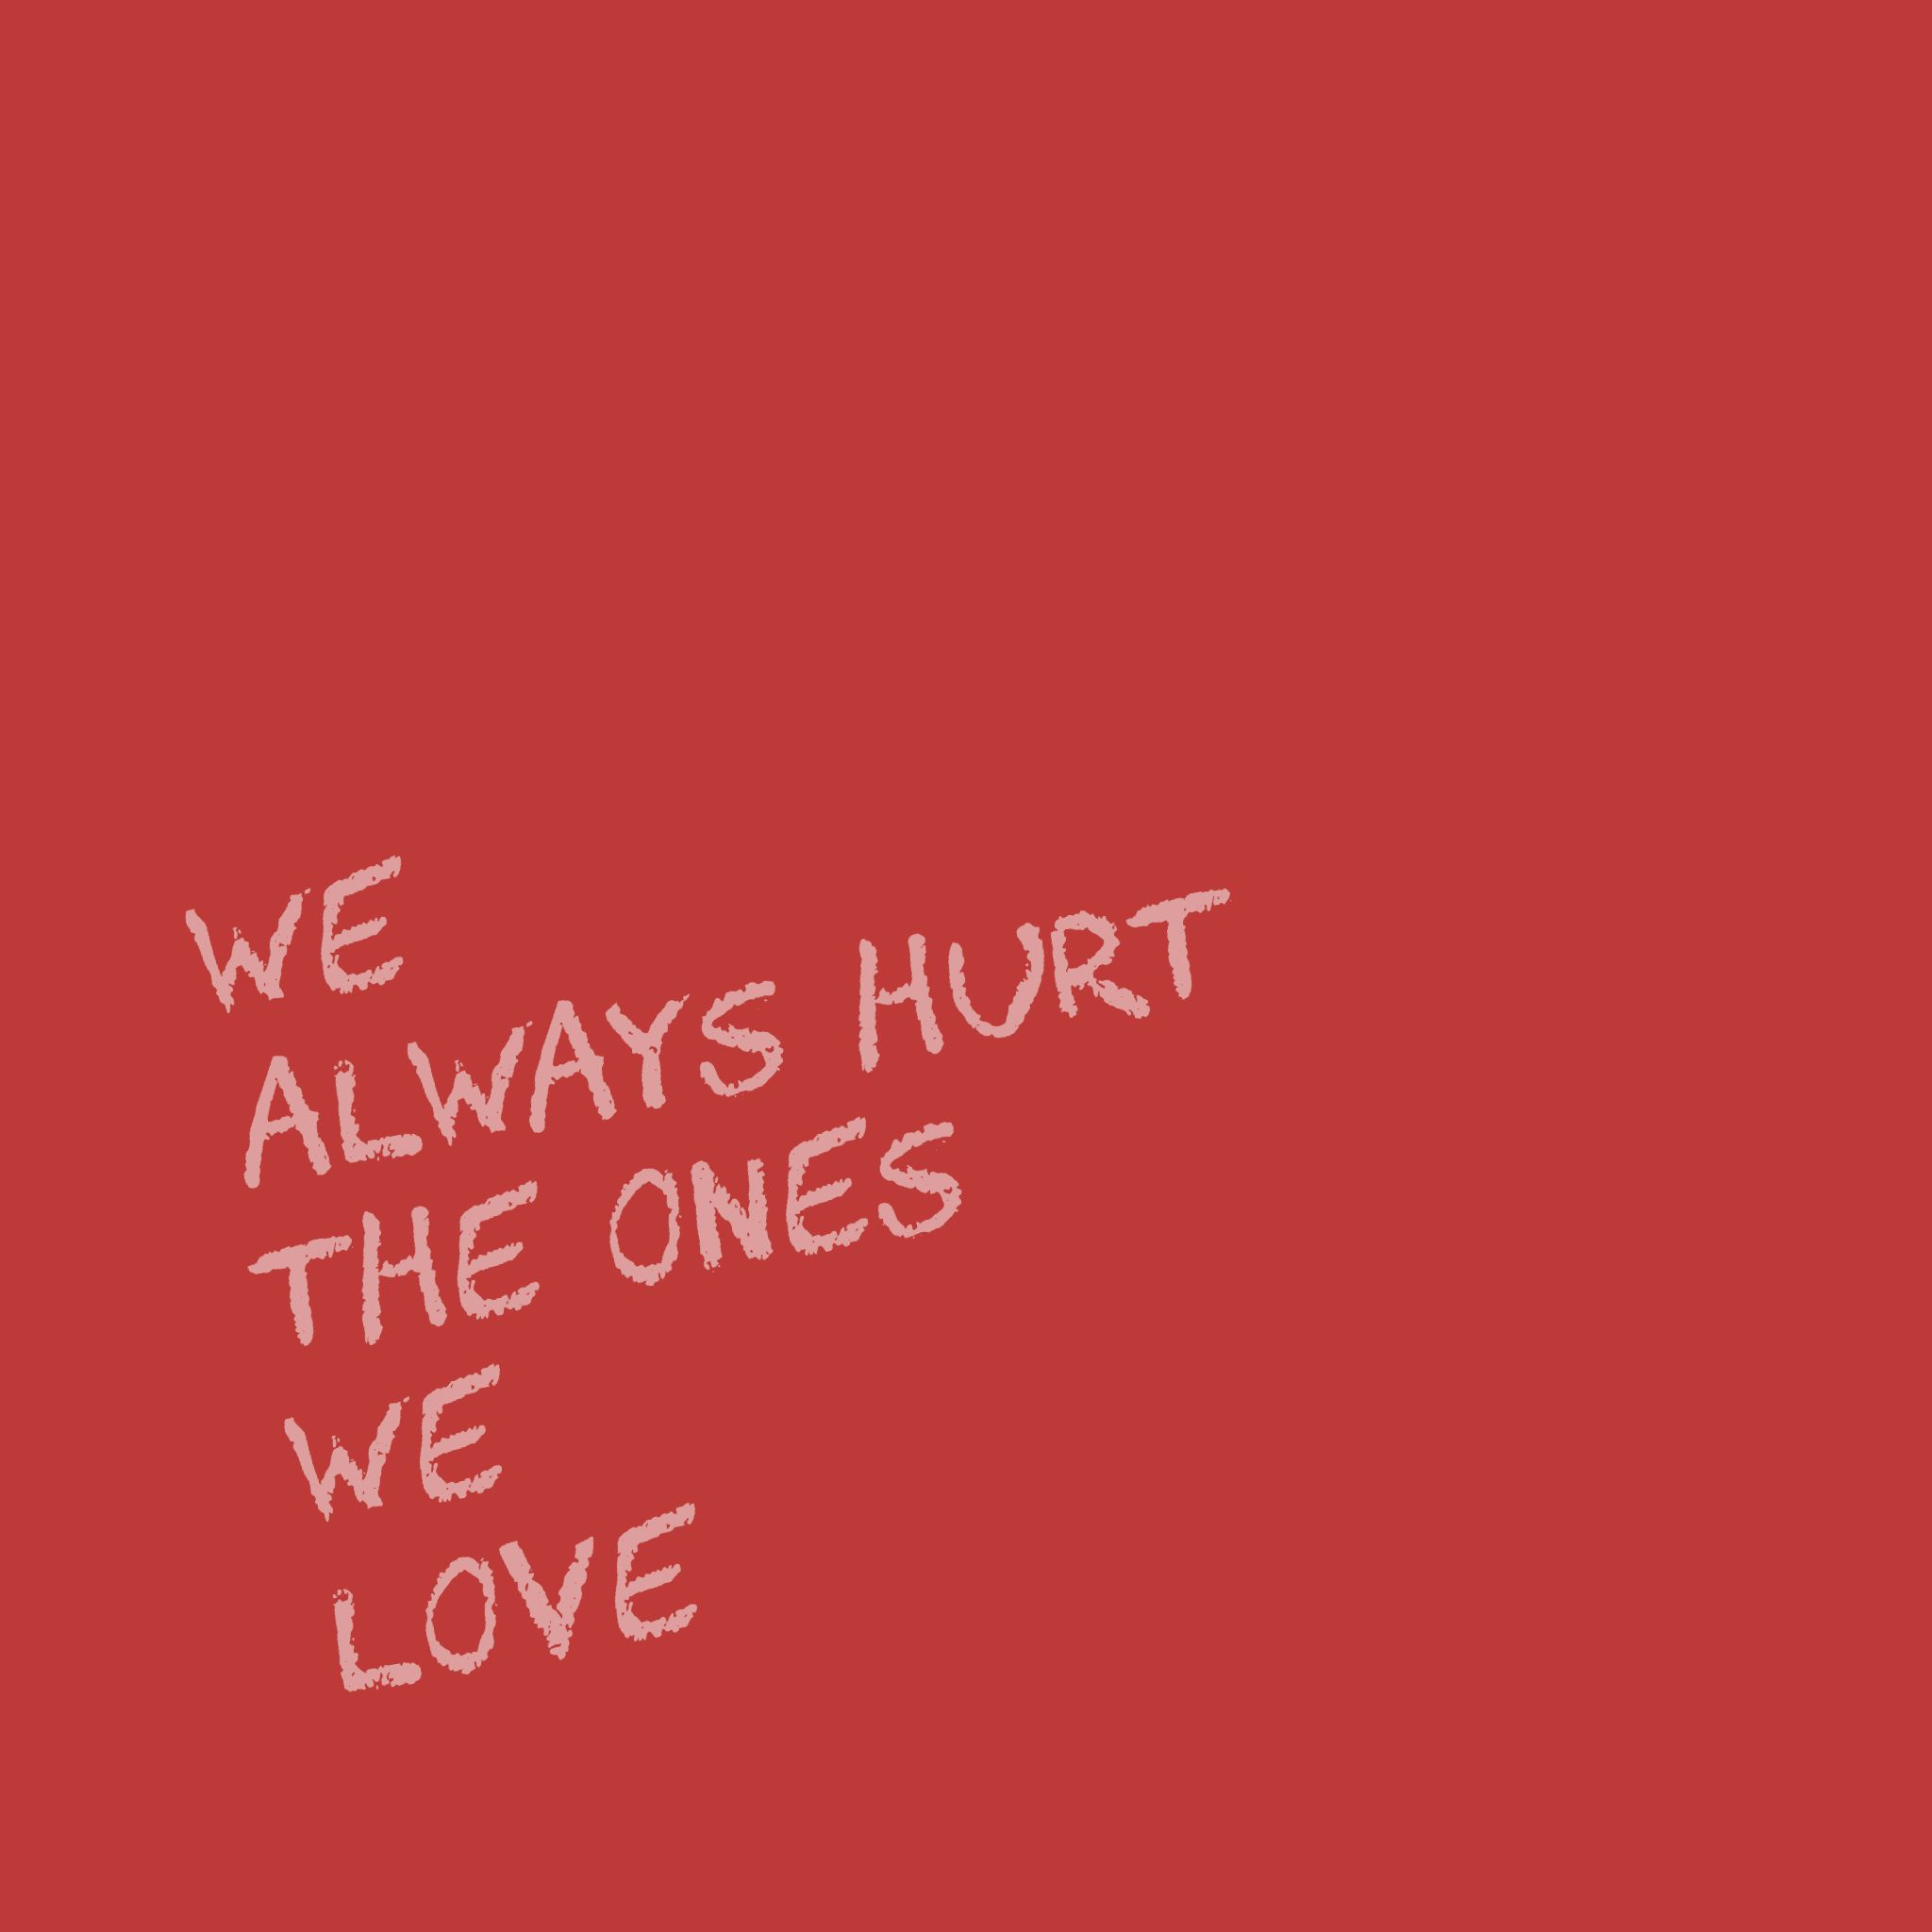 I Always Hurt The One I Love: Red , Aesthetic // We Always Hurt The Ones We Love The